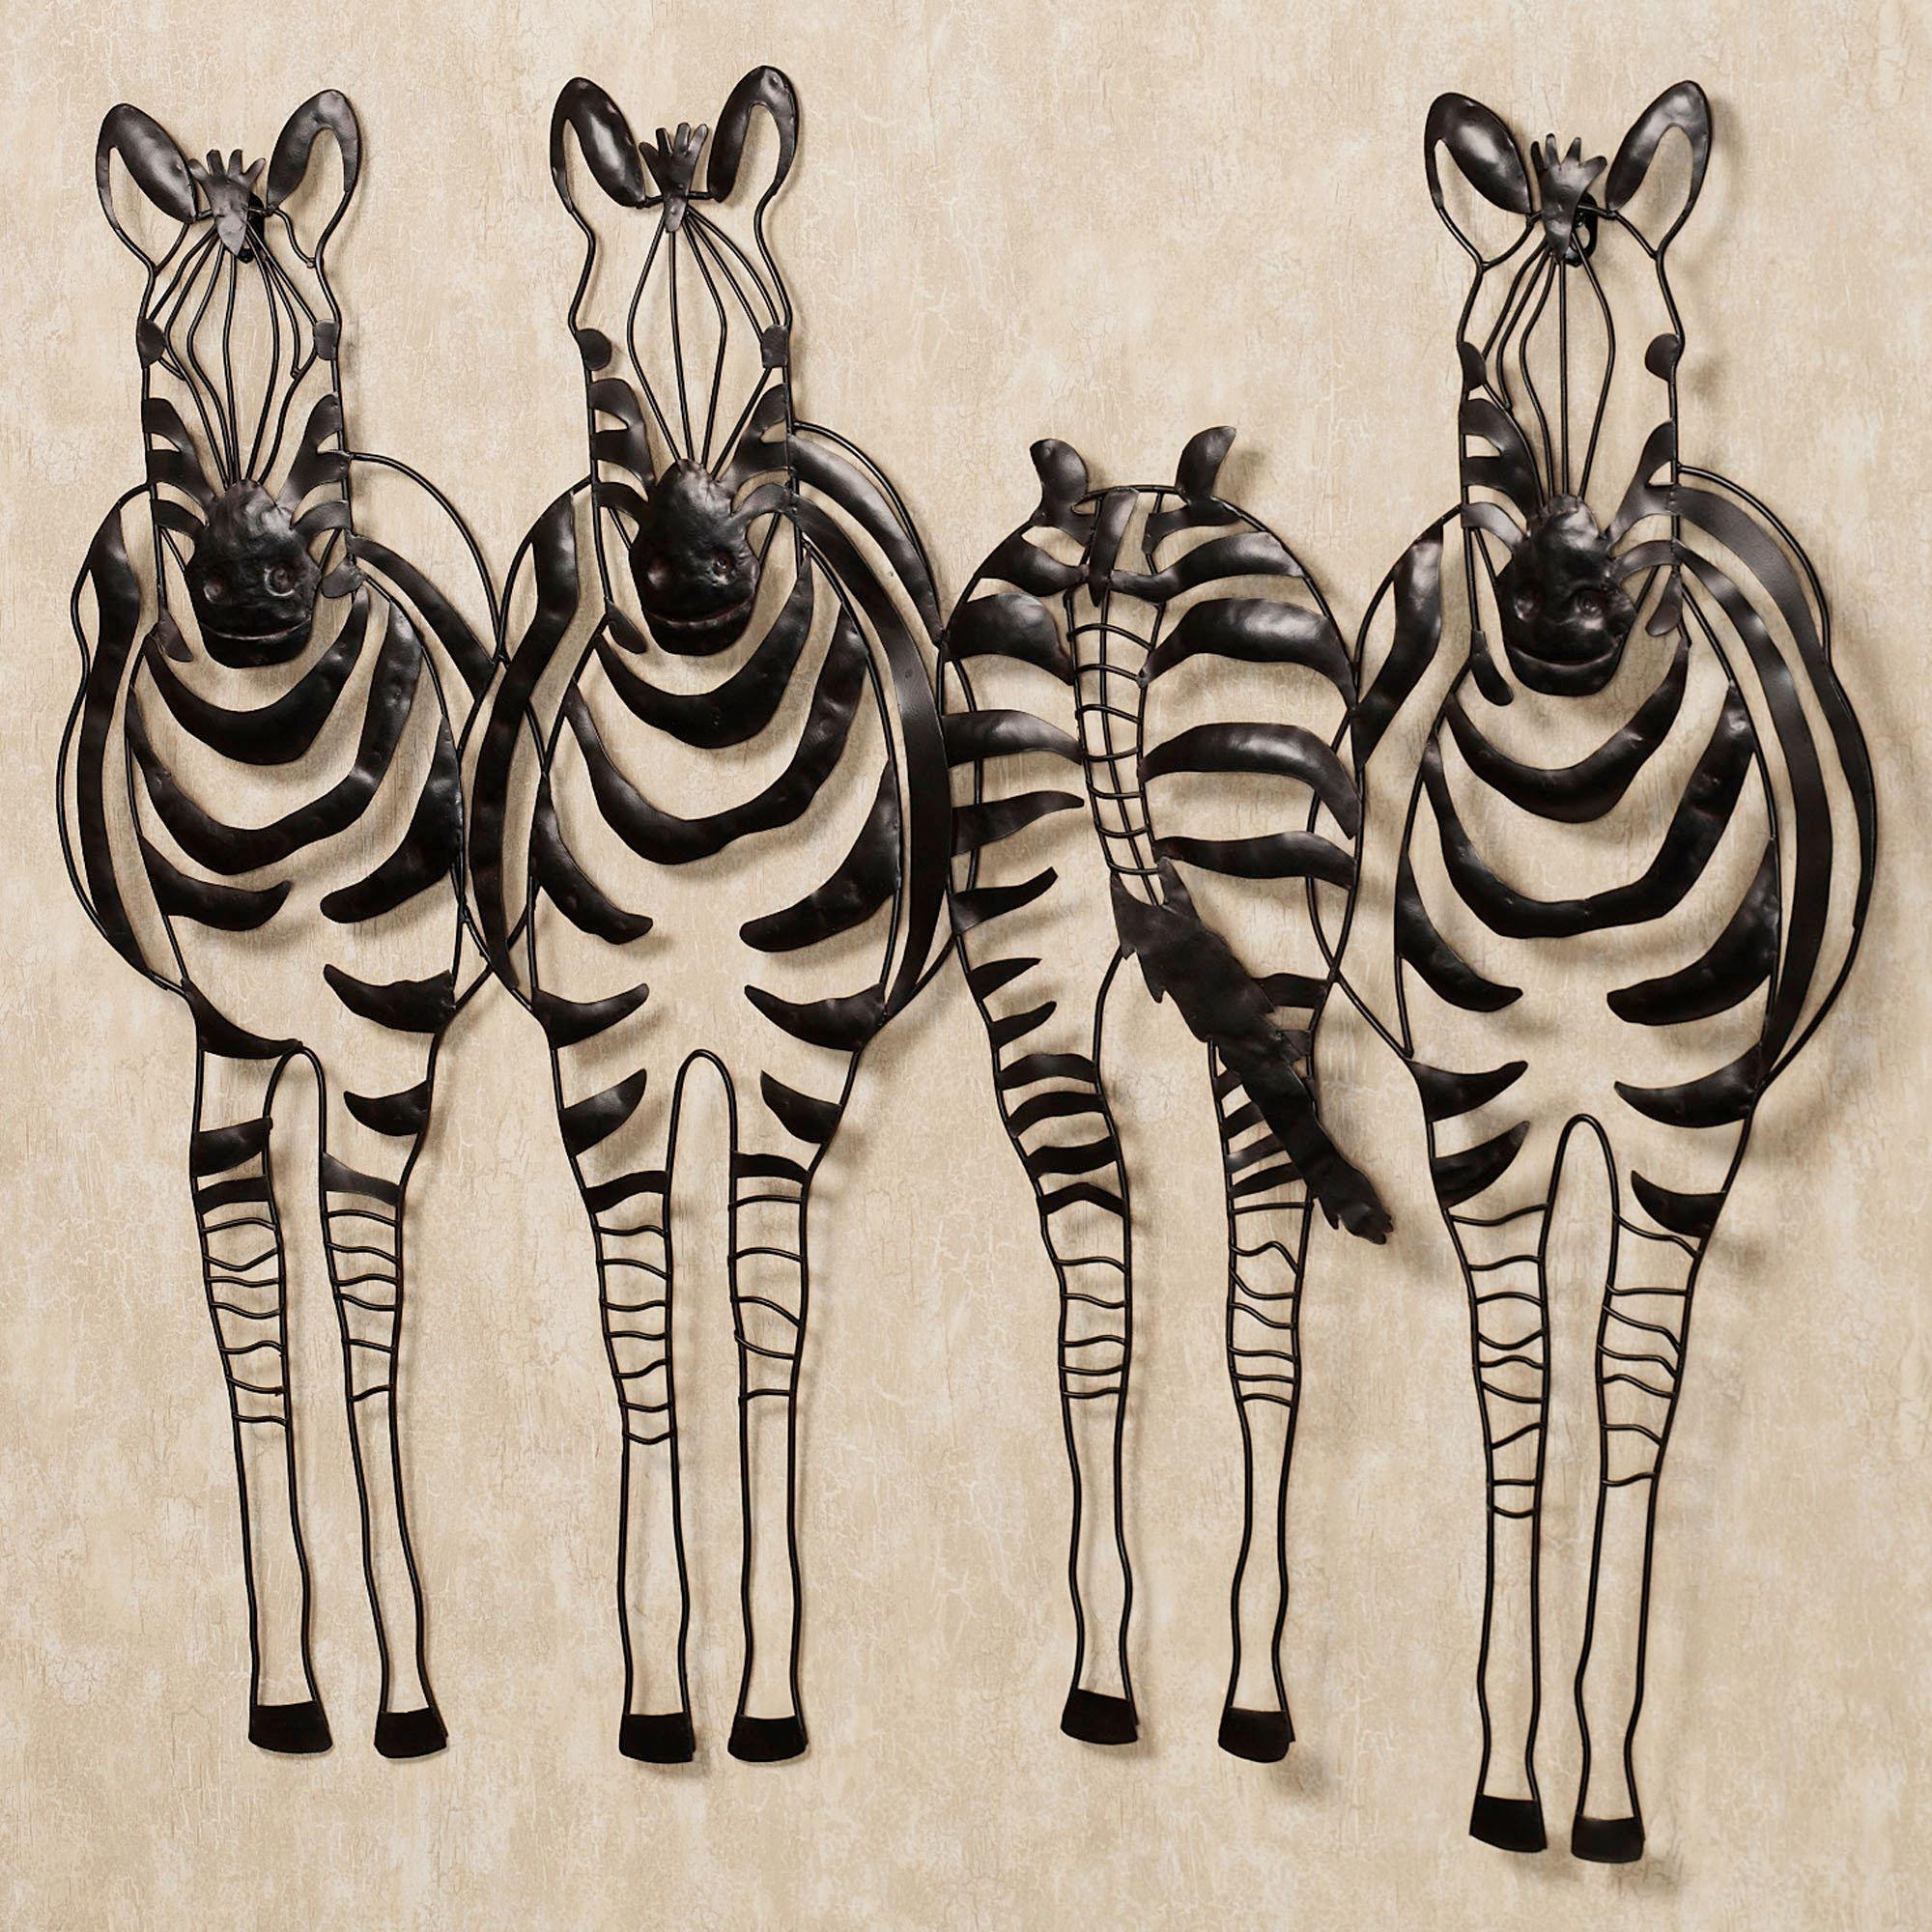 You Go Your Way Zebra Metal Wall Sculpture Art regarding African Metal Wall Art